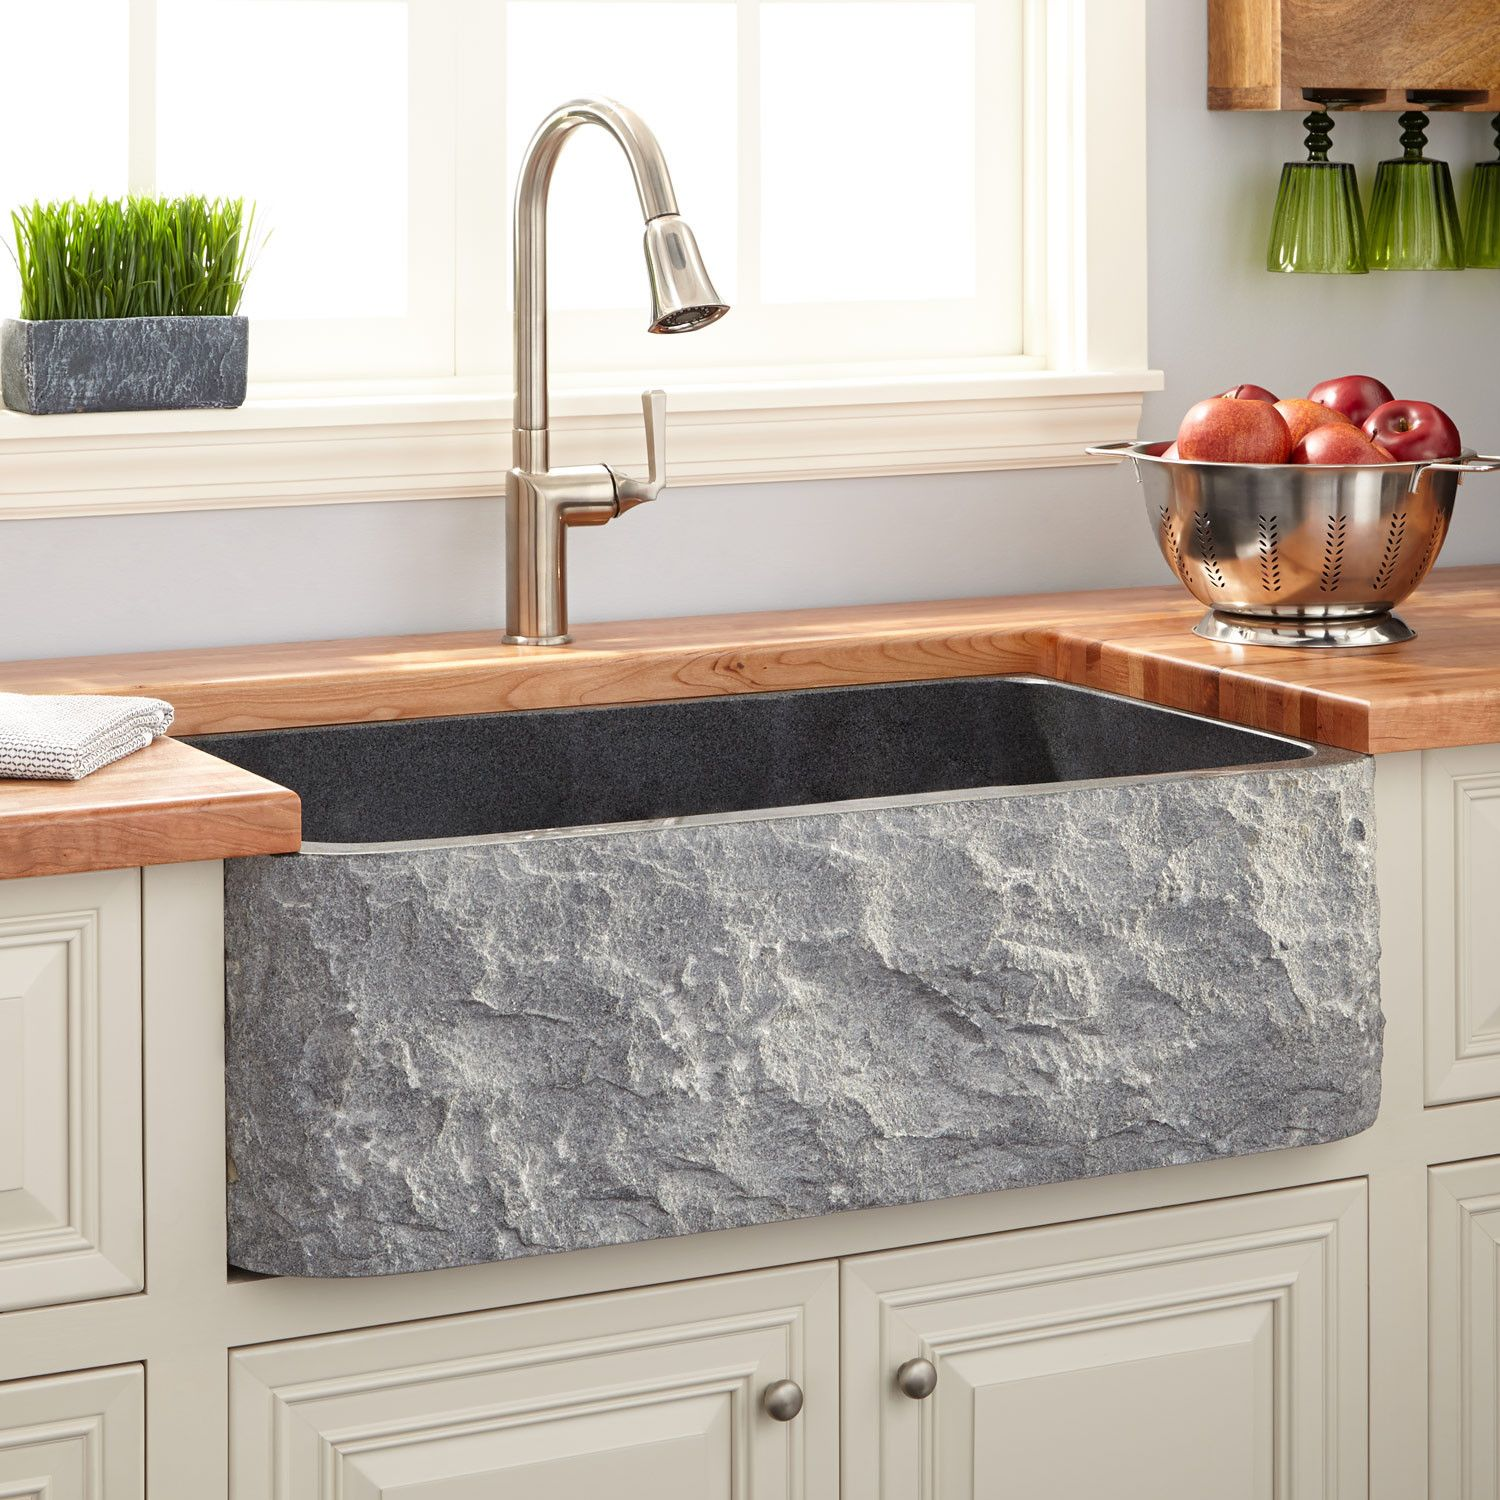 stone kitchen sinks farm sinks for kitchens 33 Polished Granite Farmhouse Sink Chiseled Apron Blue Gray